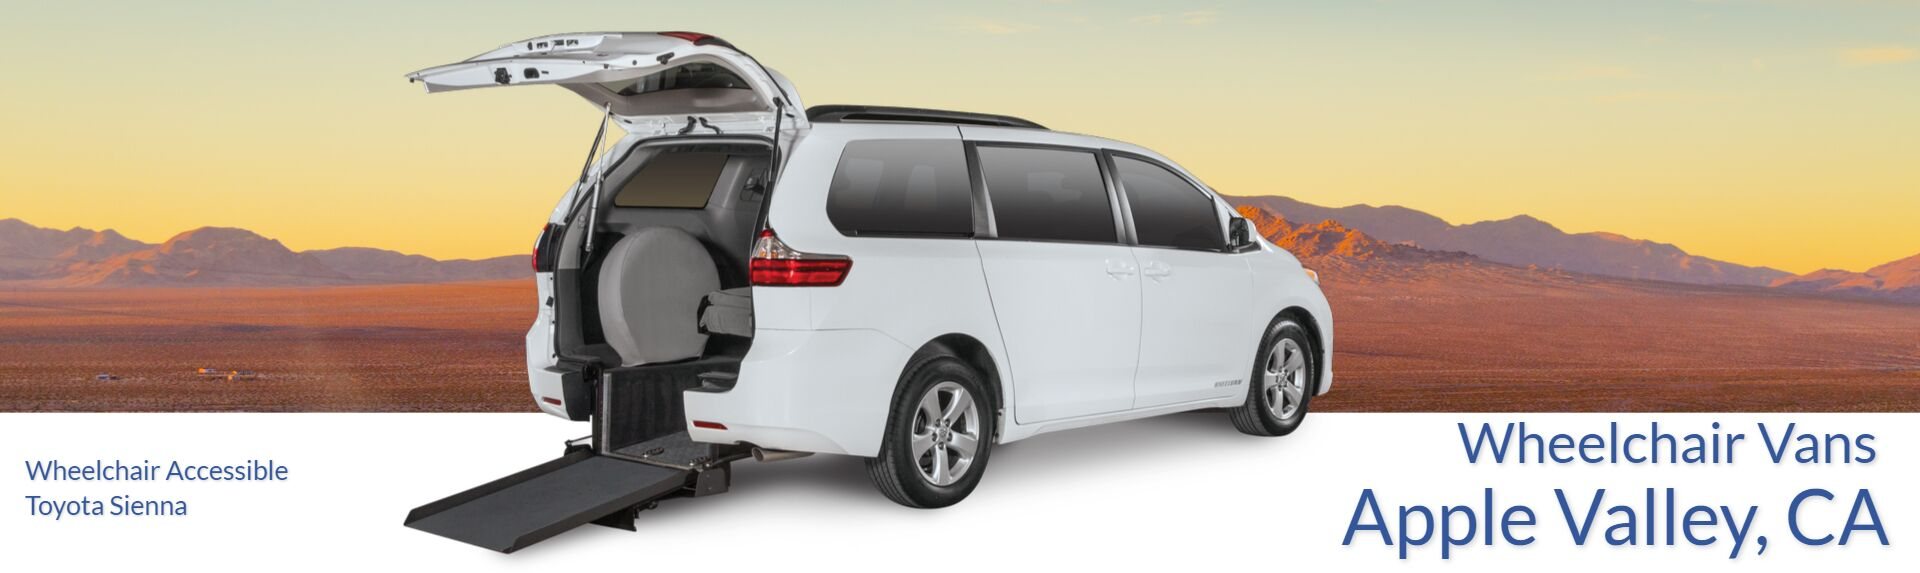 Wheelchair Vans for Sale in Apple Valley, CA | Aero Mobility